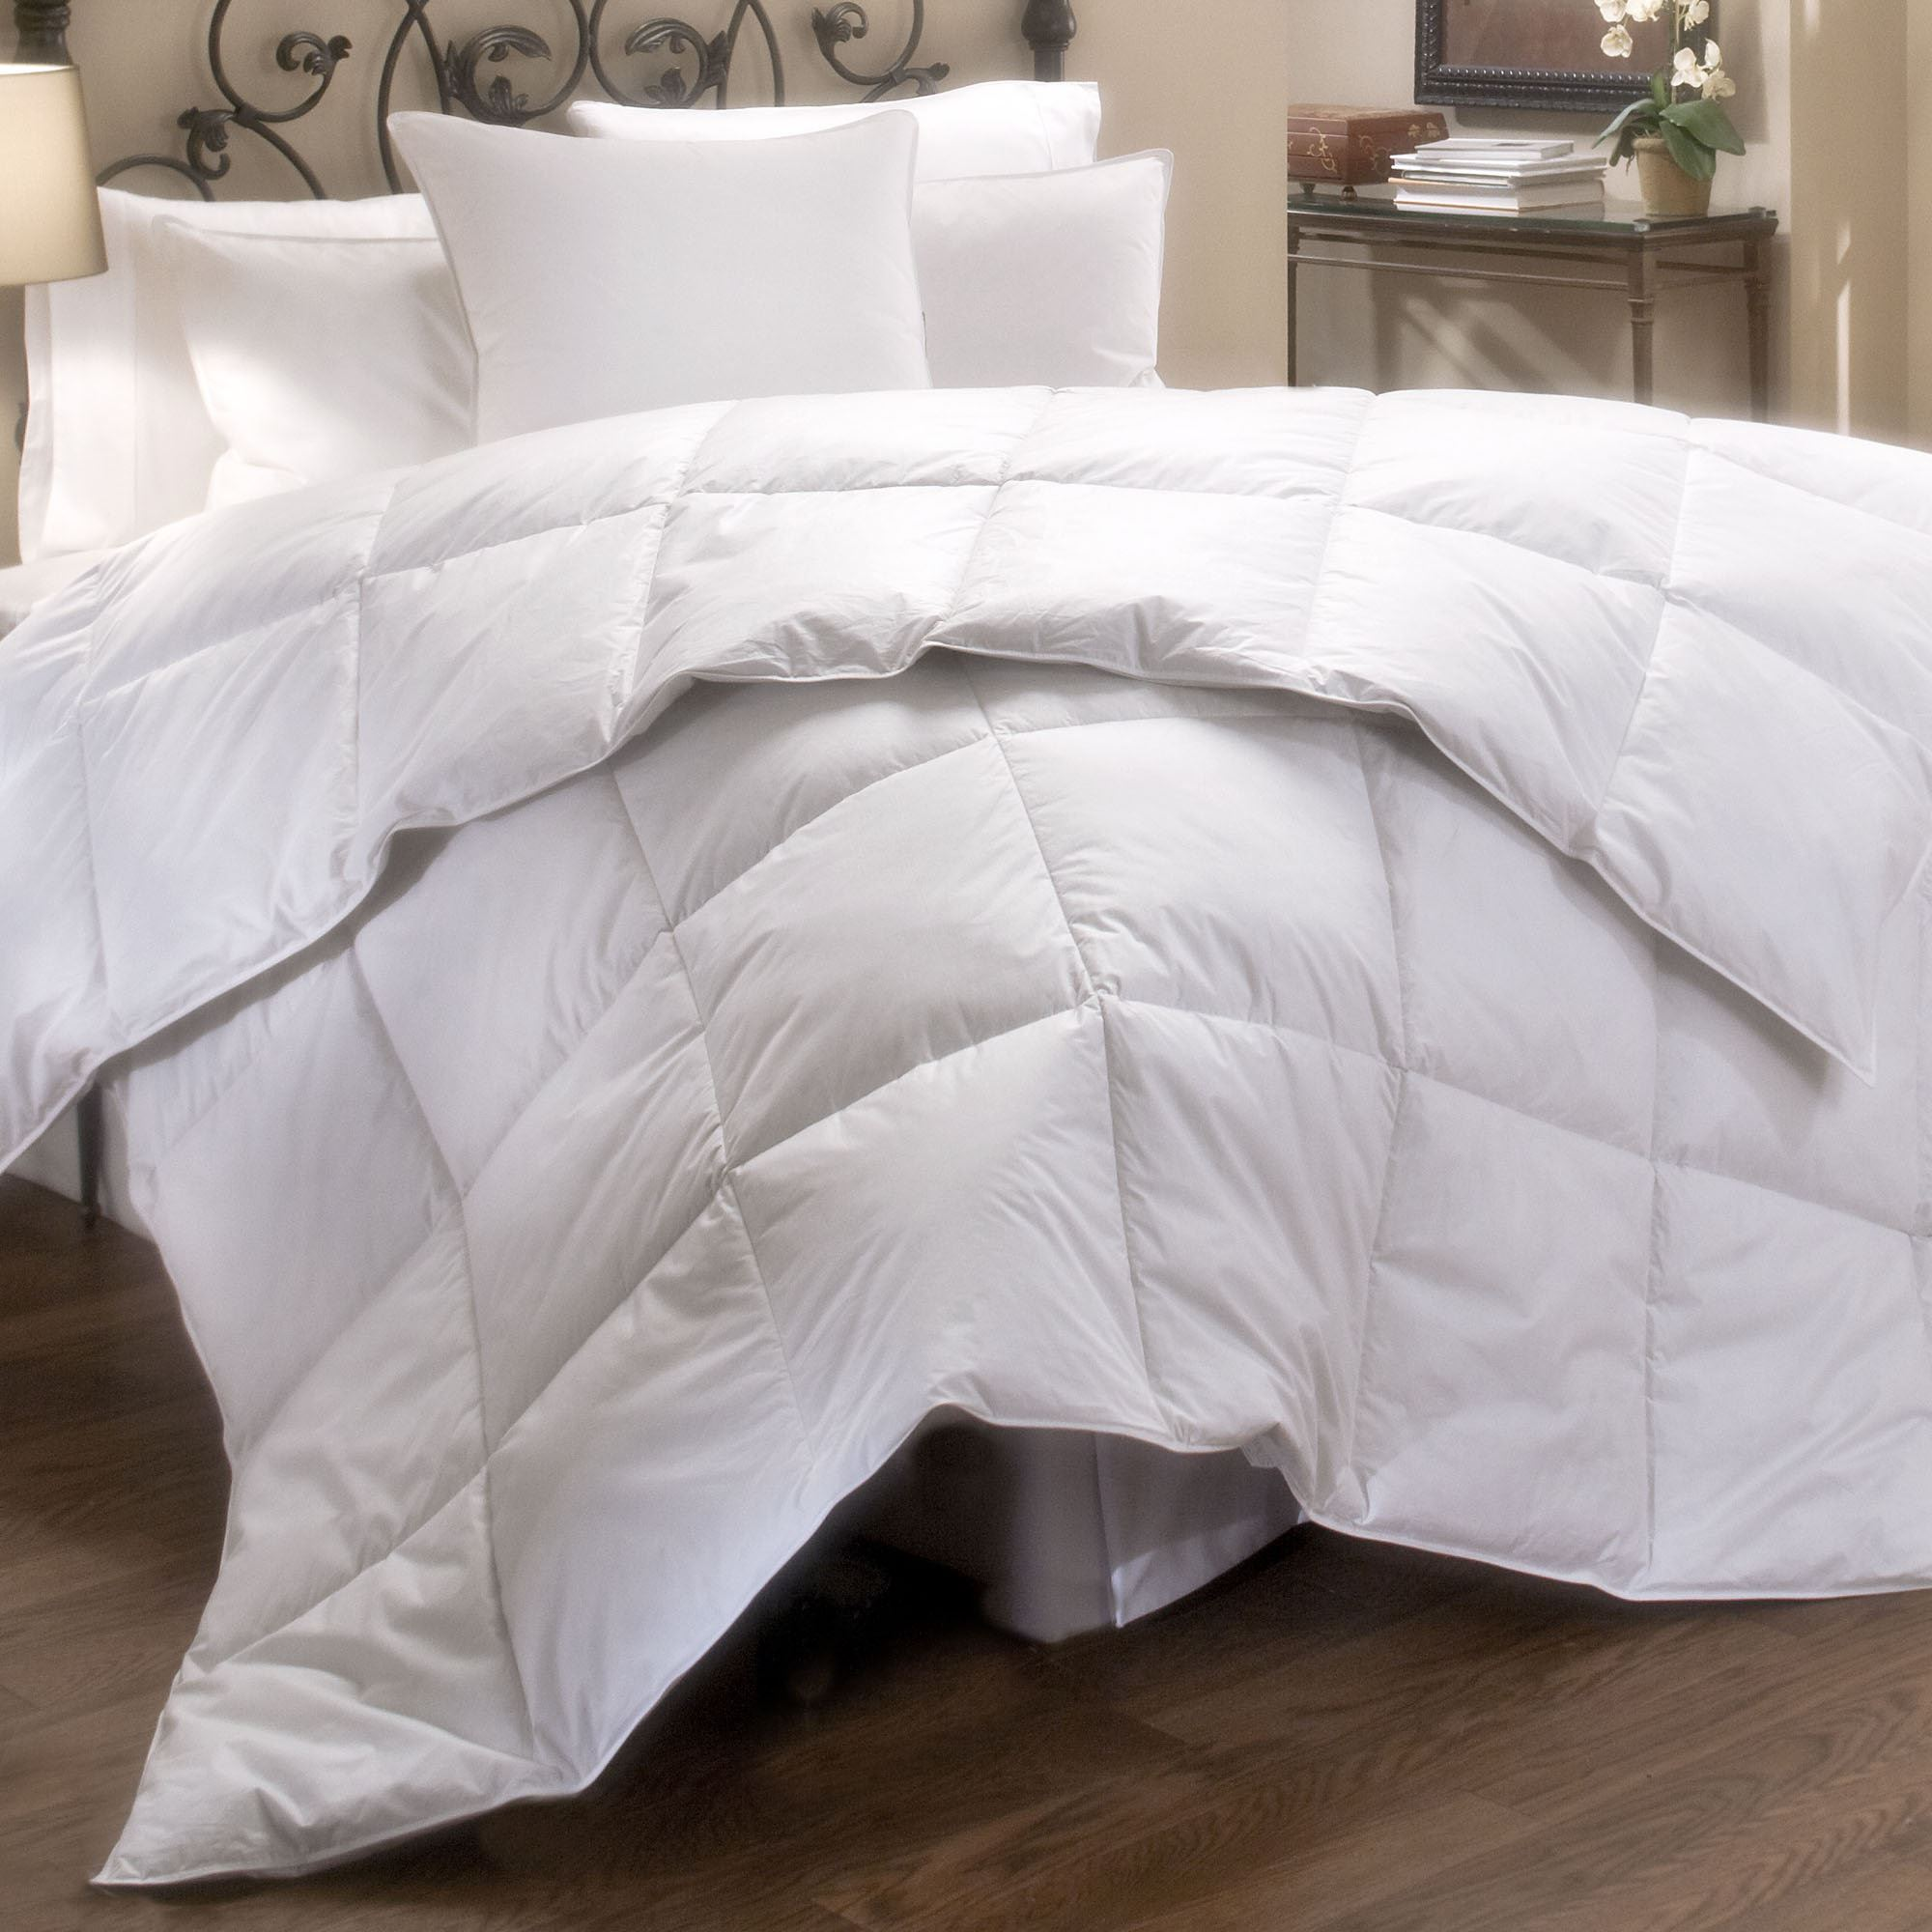 full down m meaning best queen sale alternative comforter